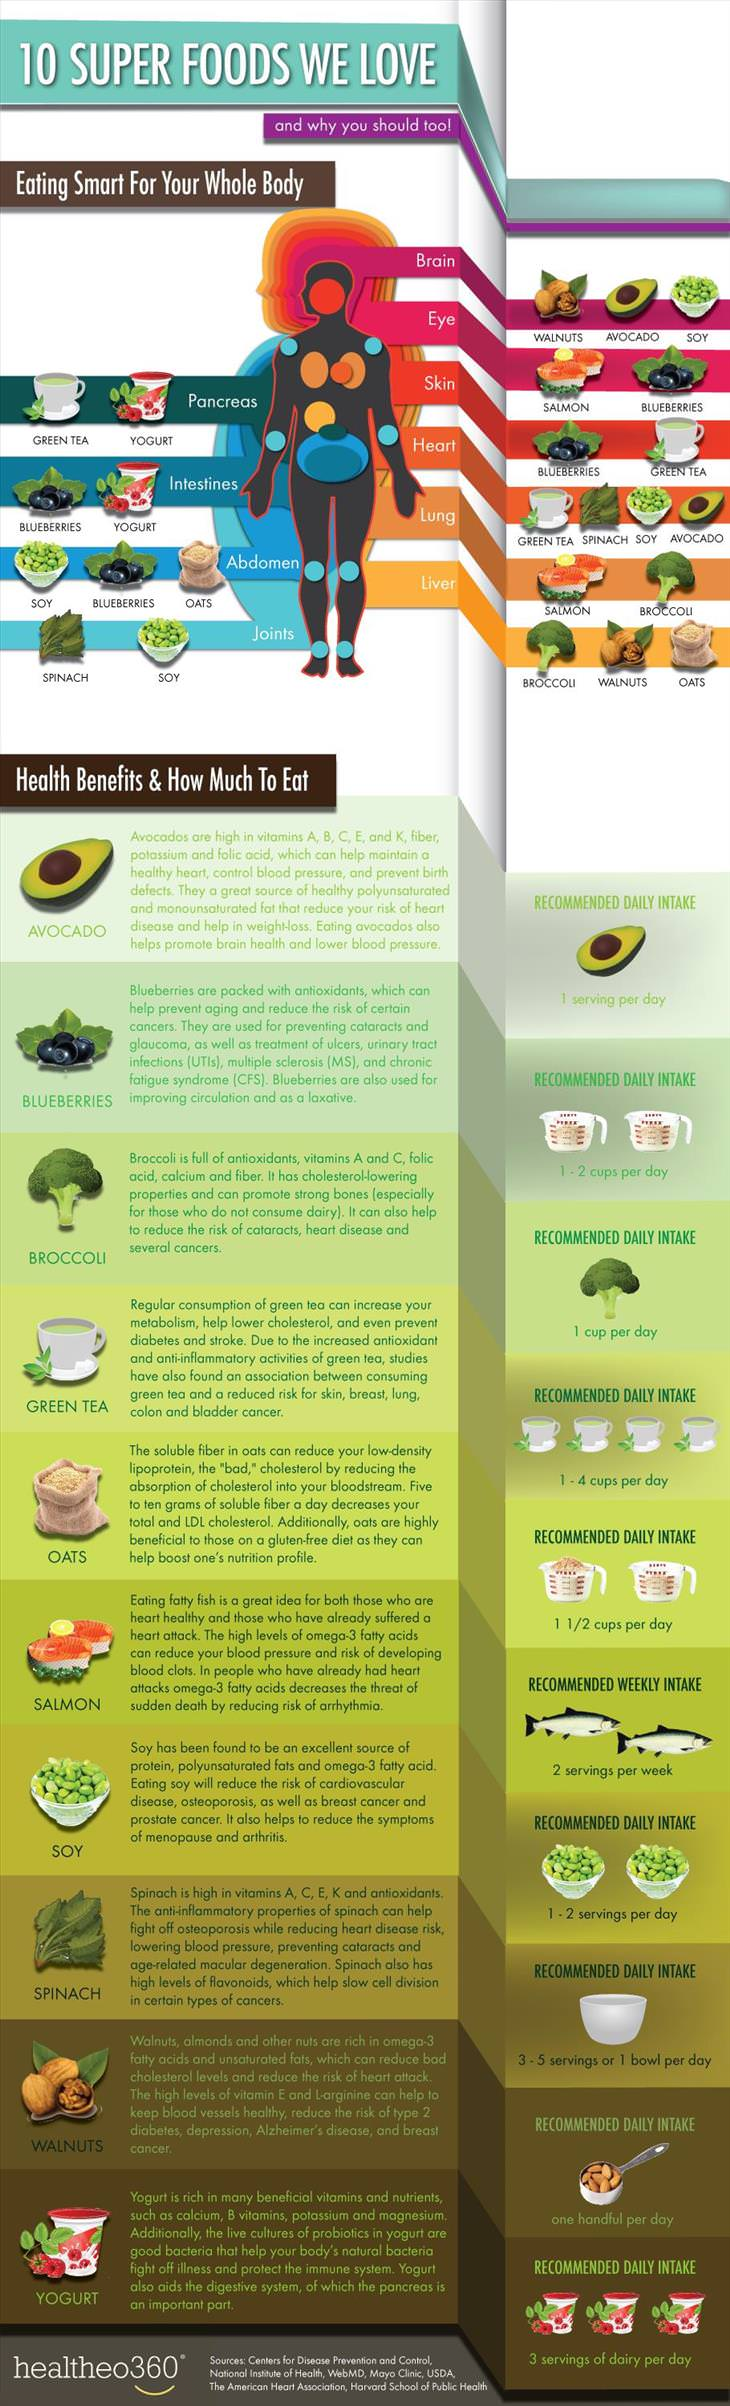 Superfoods - Fruit and Veg - Organs they boost